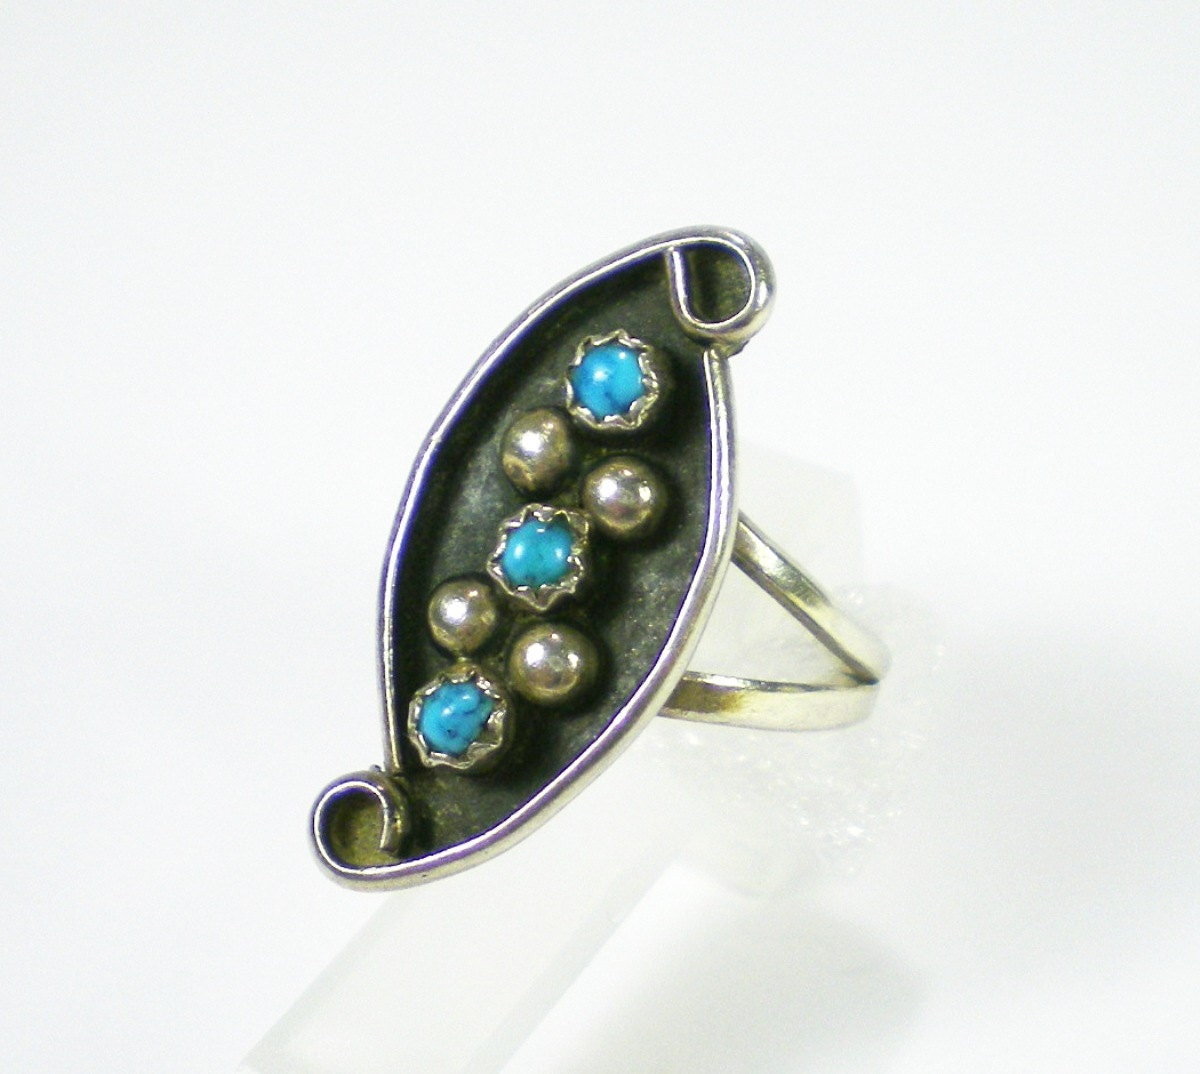 zuni sterling silver turquoise ring vintage jewelry